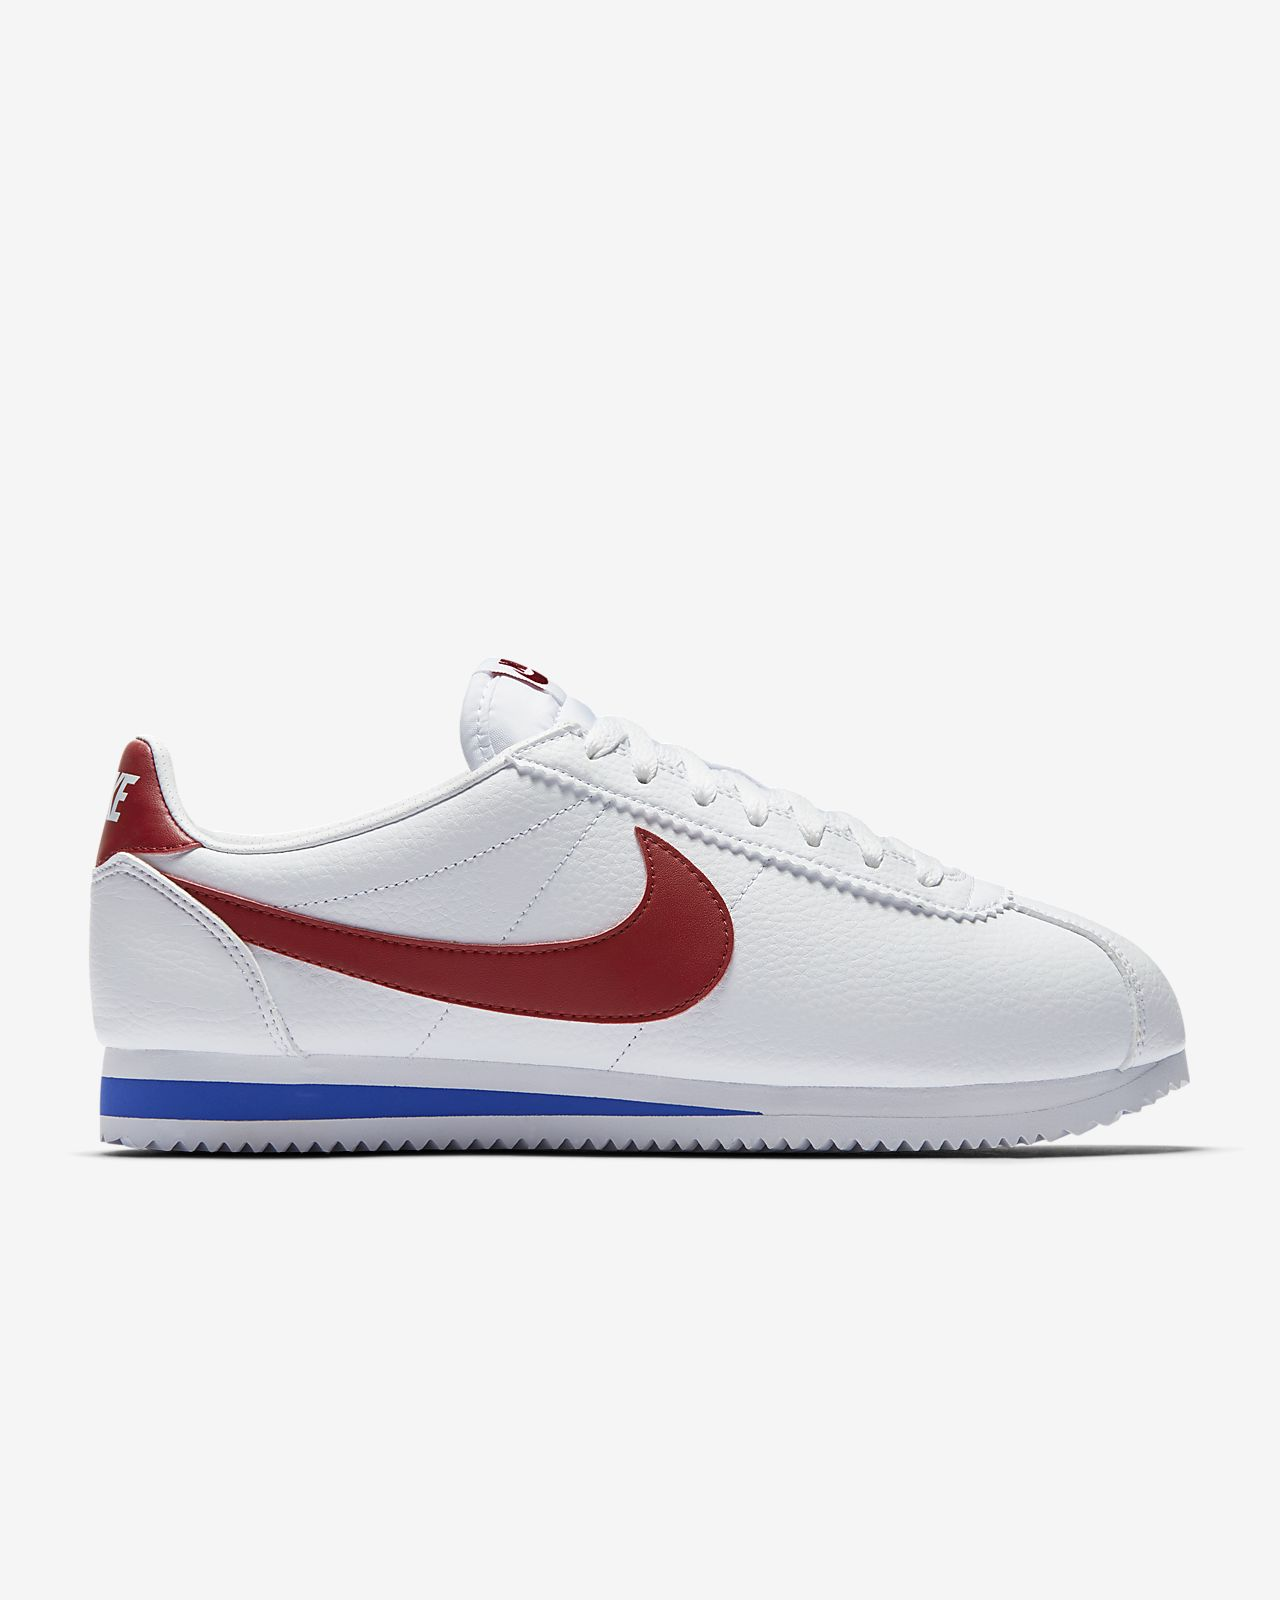 detailed look 60852 61fd1 ... Nike Classic Cortez Men s Shoe